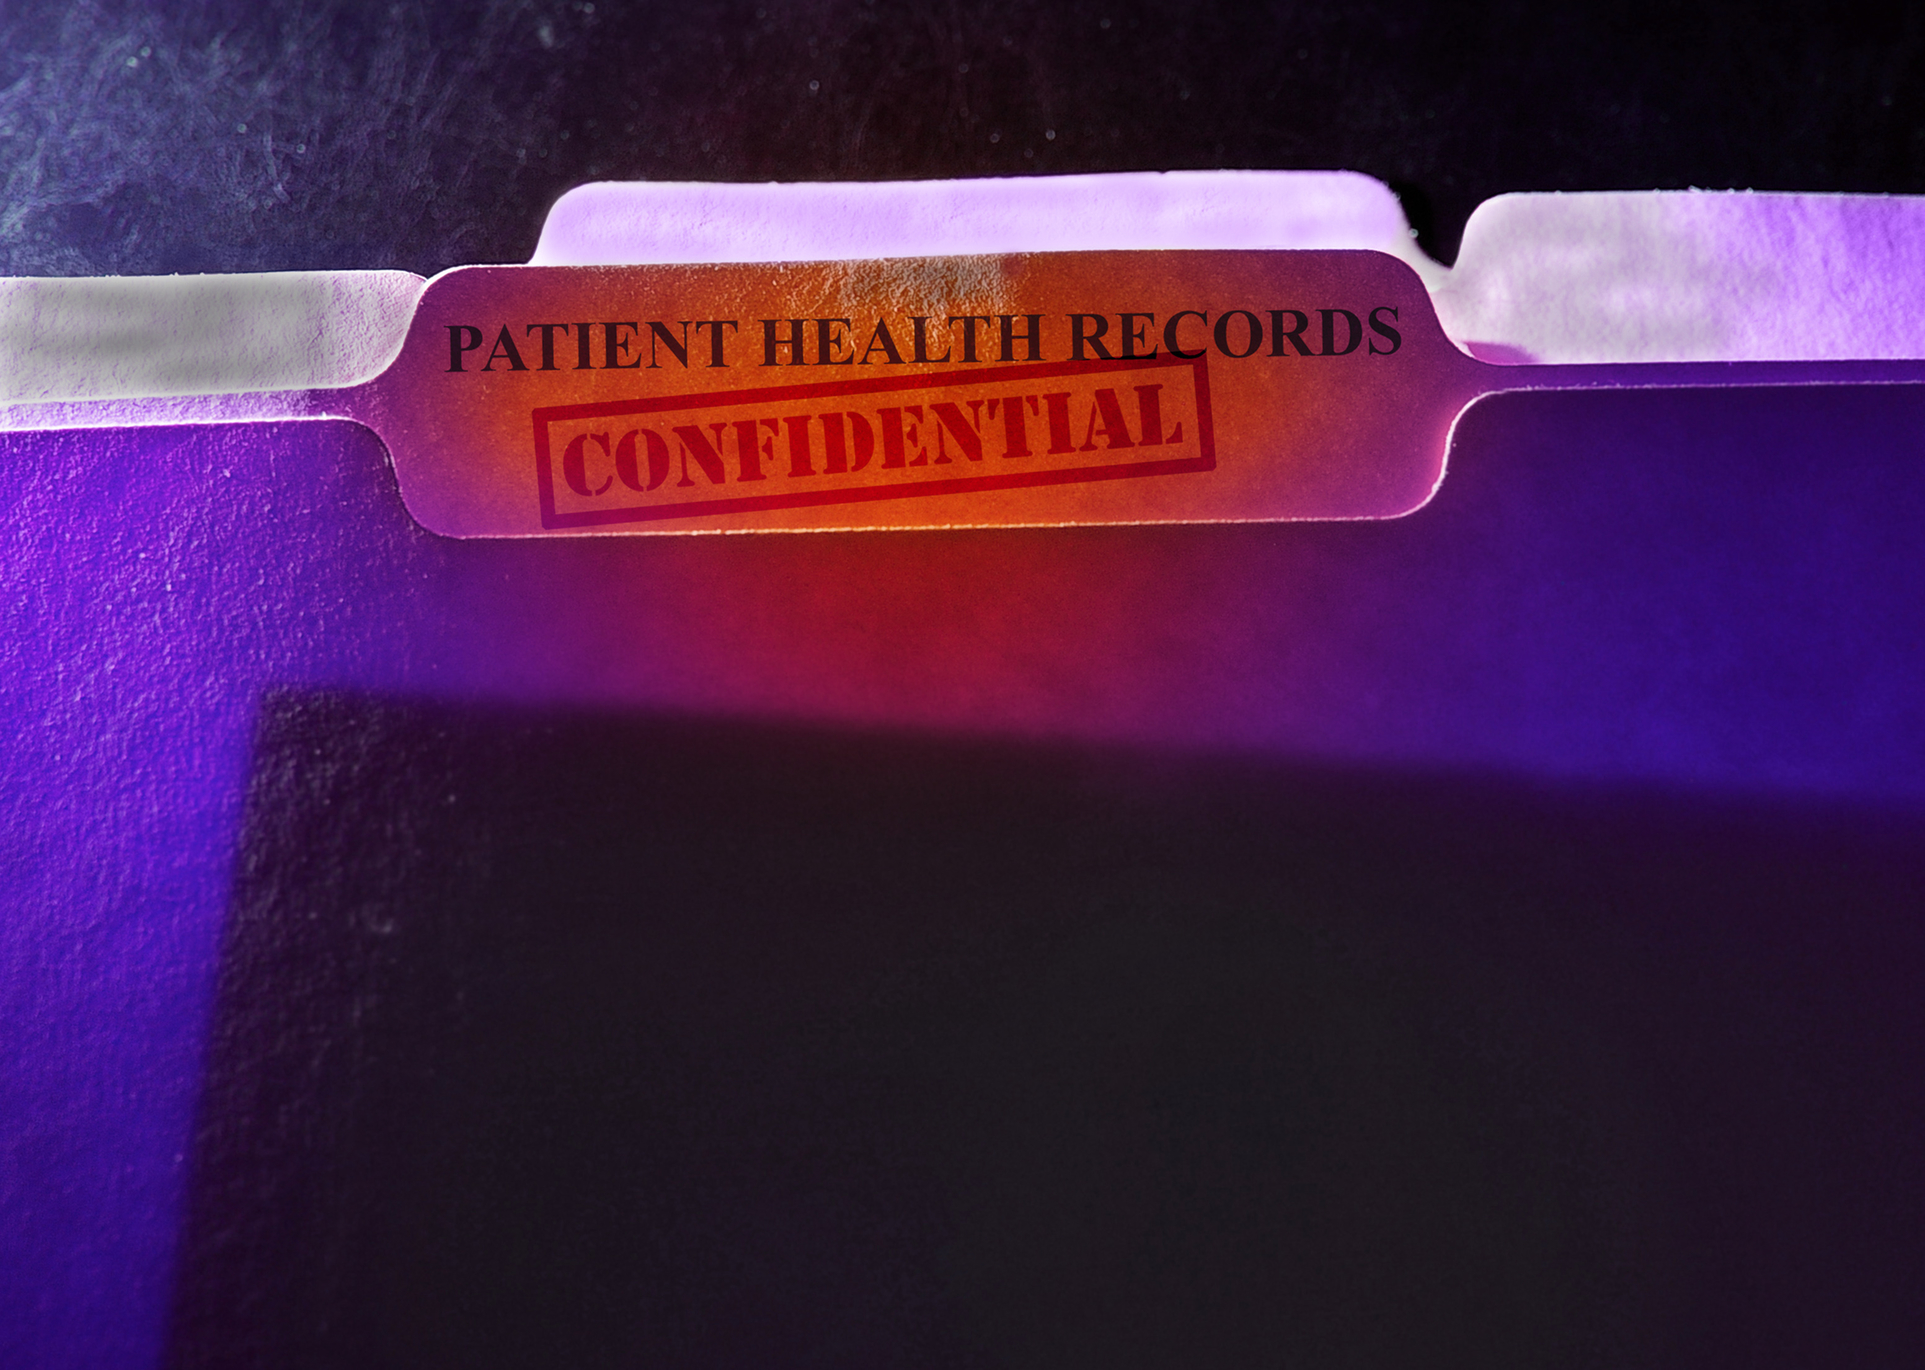 Confidential patient health records folder